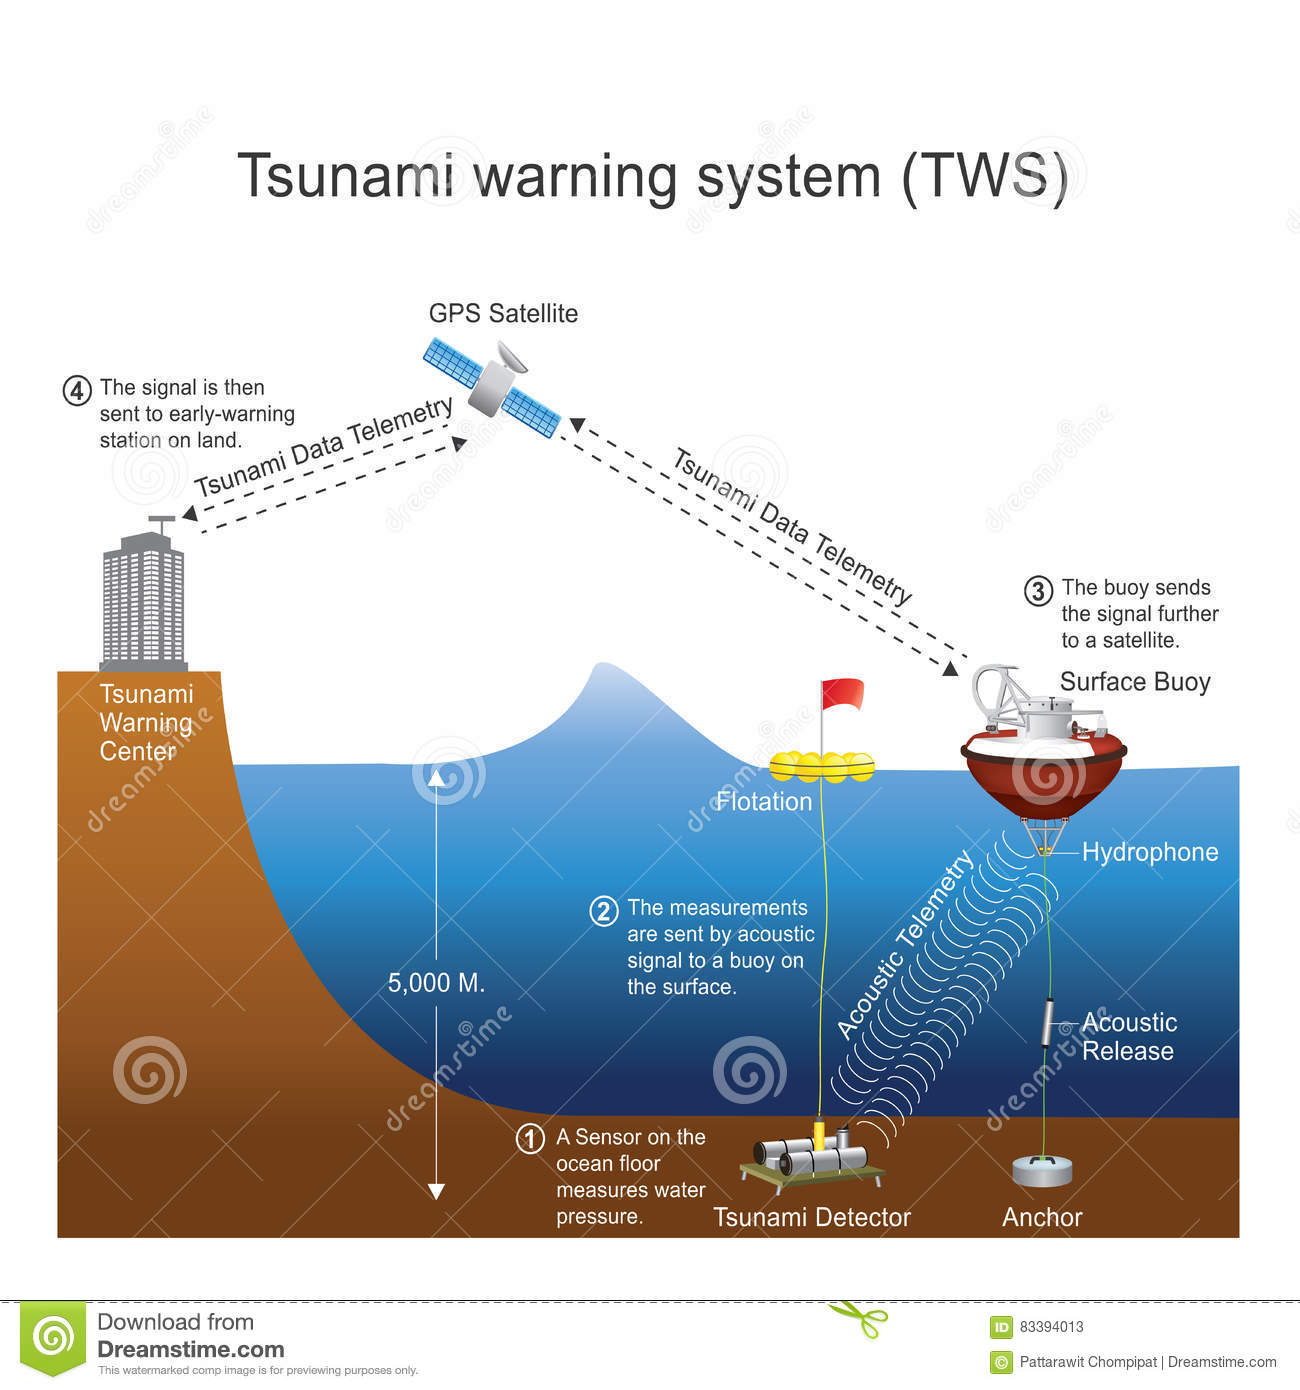 Tsunami two years on: Japan finally gets warning system that would have saved hundreds of lives